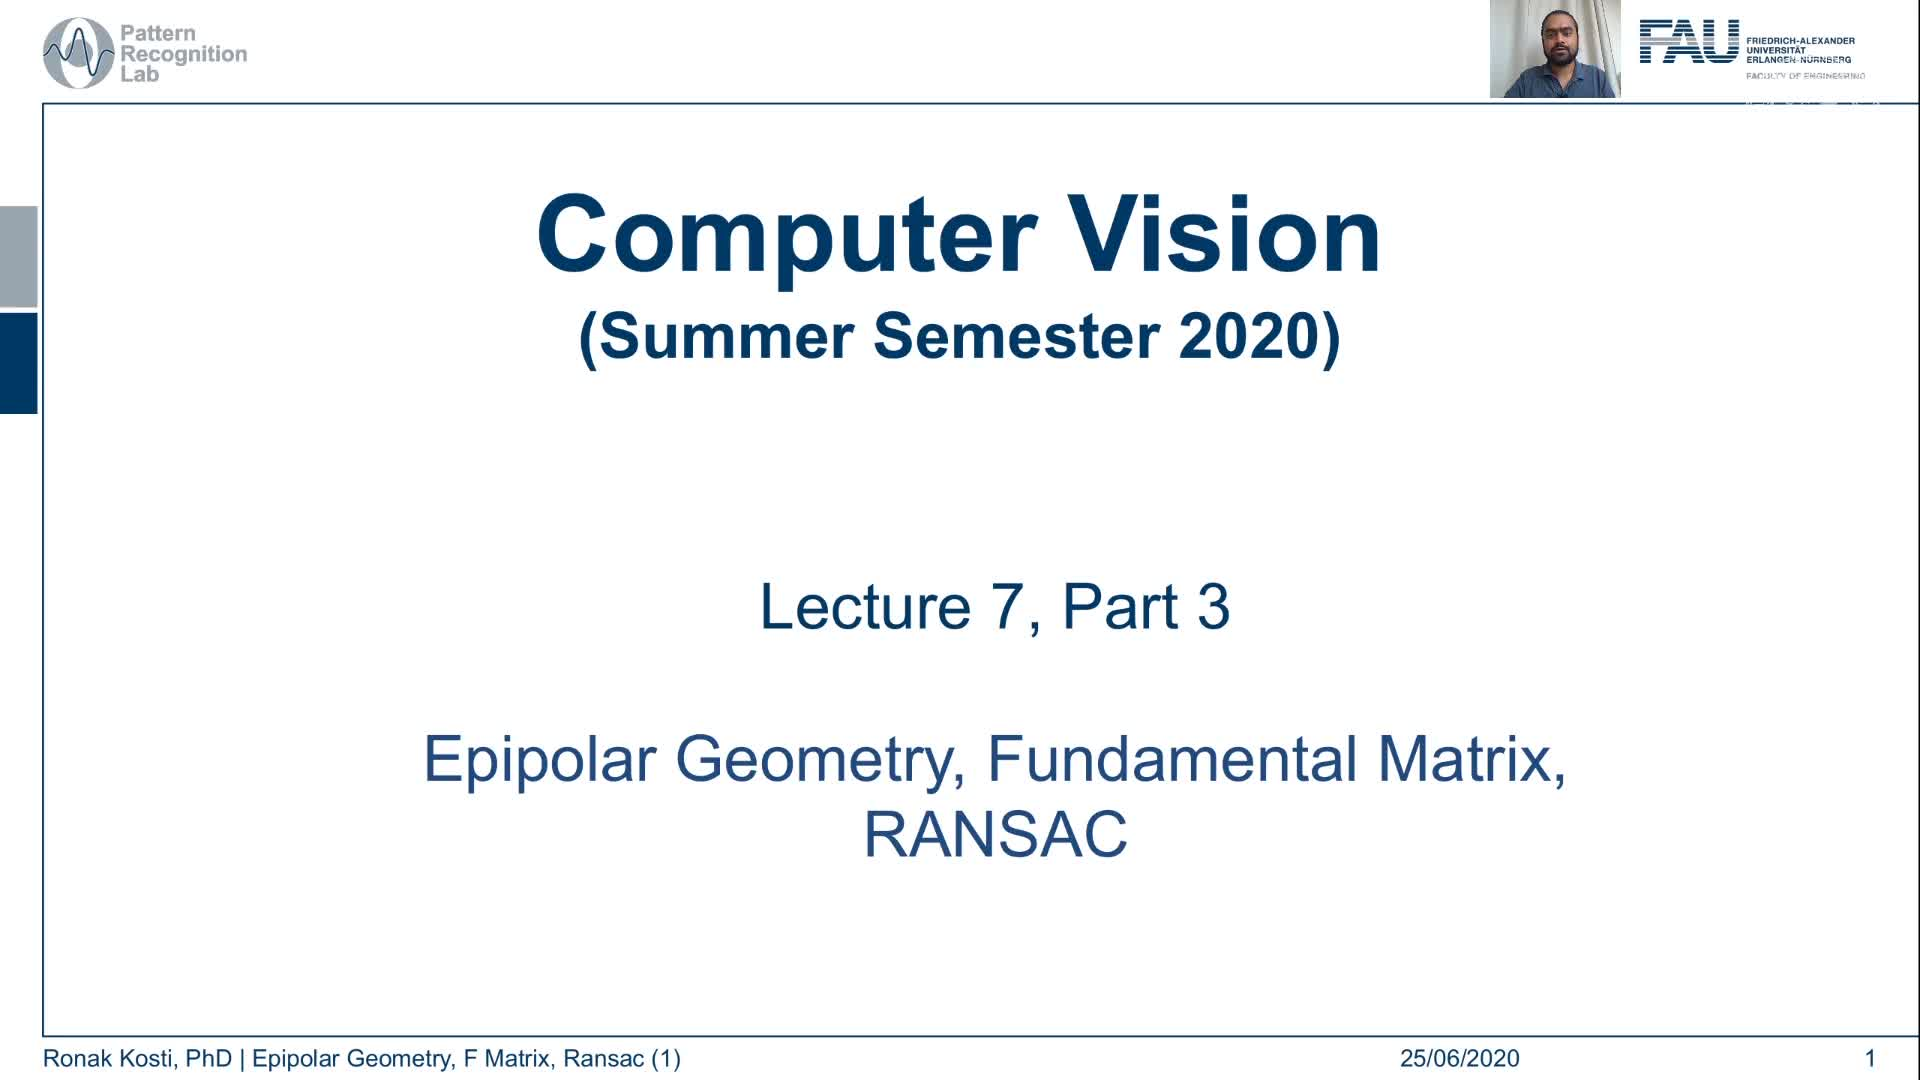 Epipolar Geometry and Ransac (Lecture 7, Part 3) preview image